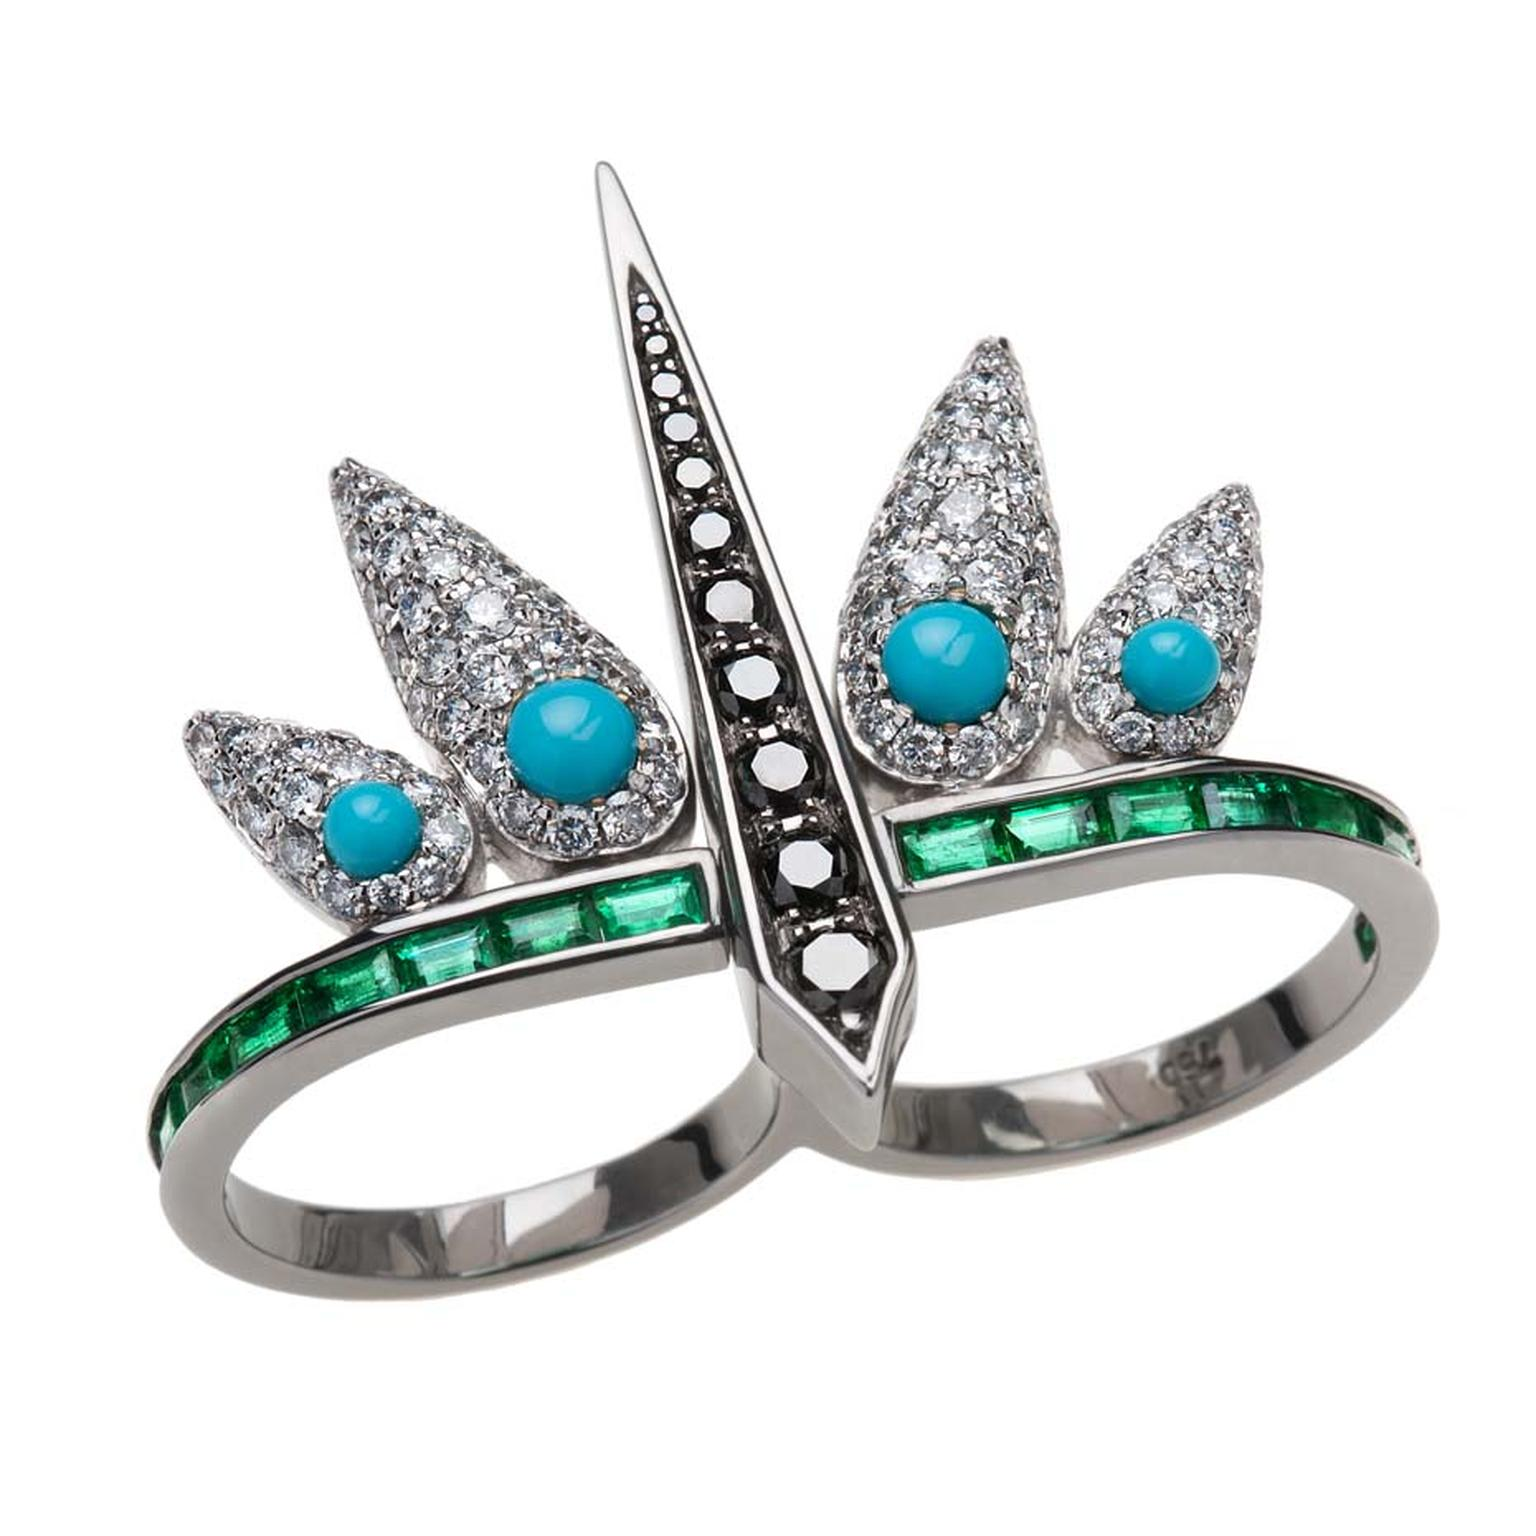 Nikos Koulis Spectrum collection ring with white and black diamonds, turquoise and baguette emeralds